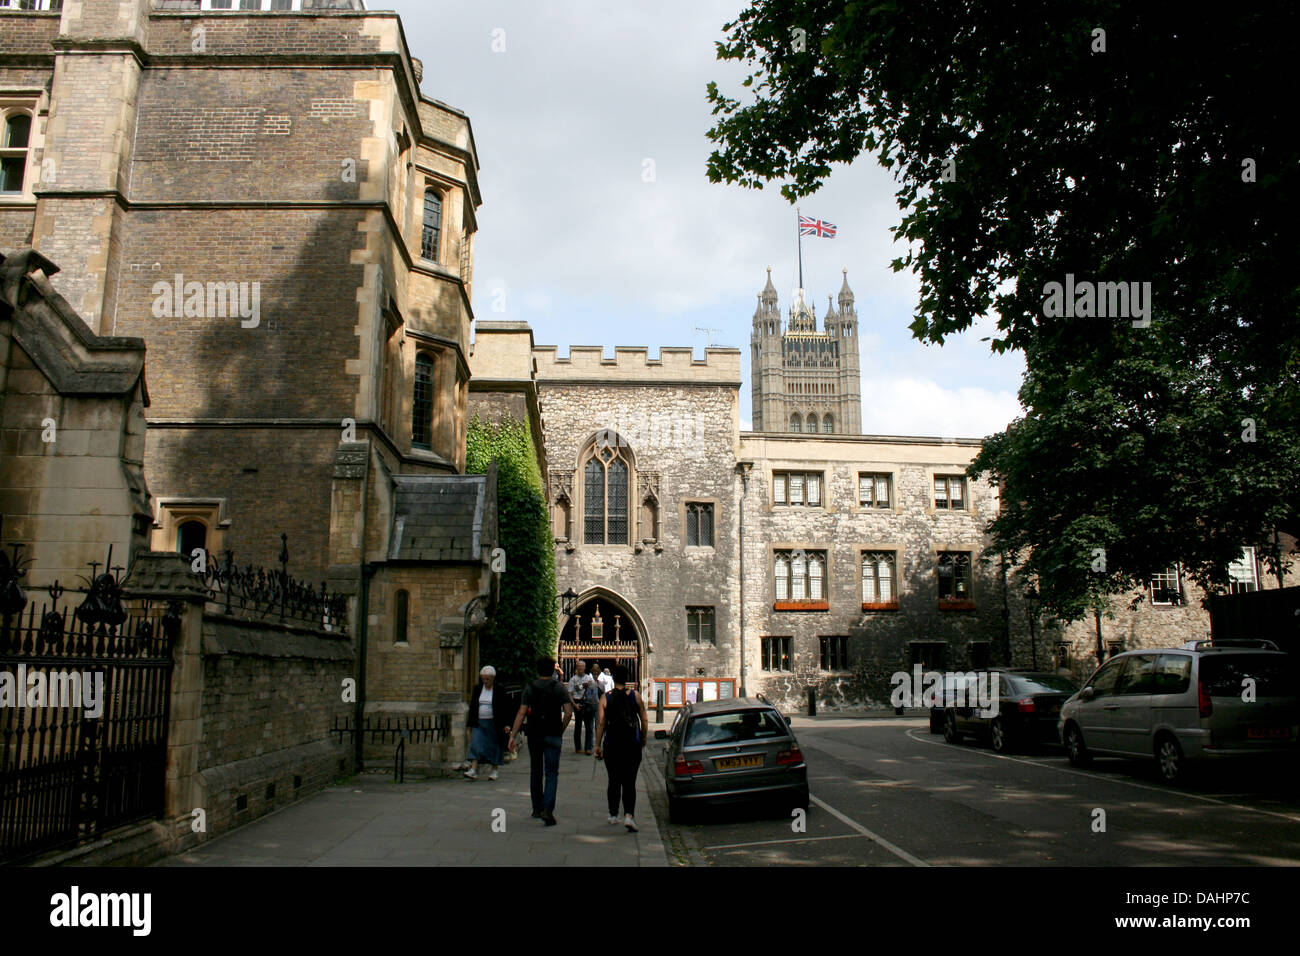 deans yard city of westminster london uk 2013 - Stock Image